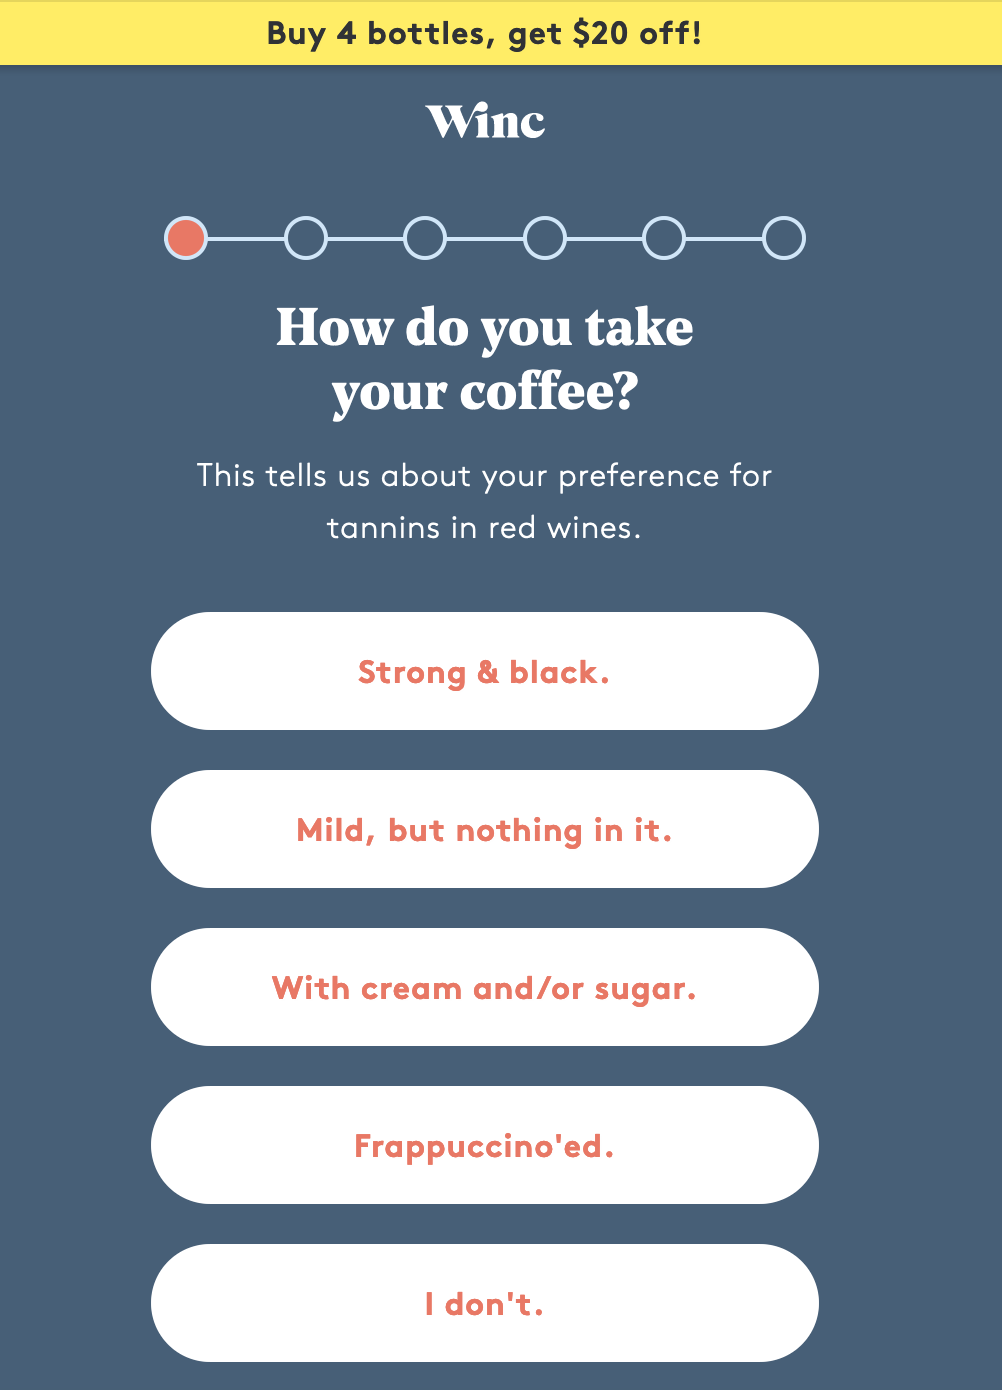 winc ecommerce website uses personalized quiz to grow email subscriber list